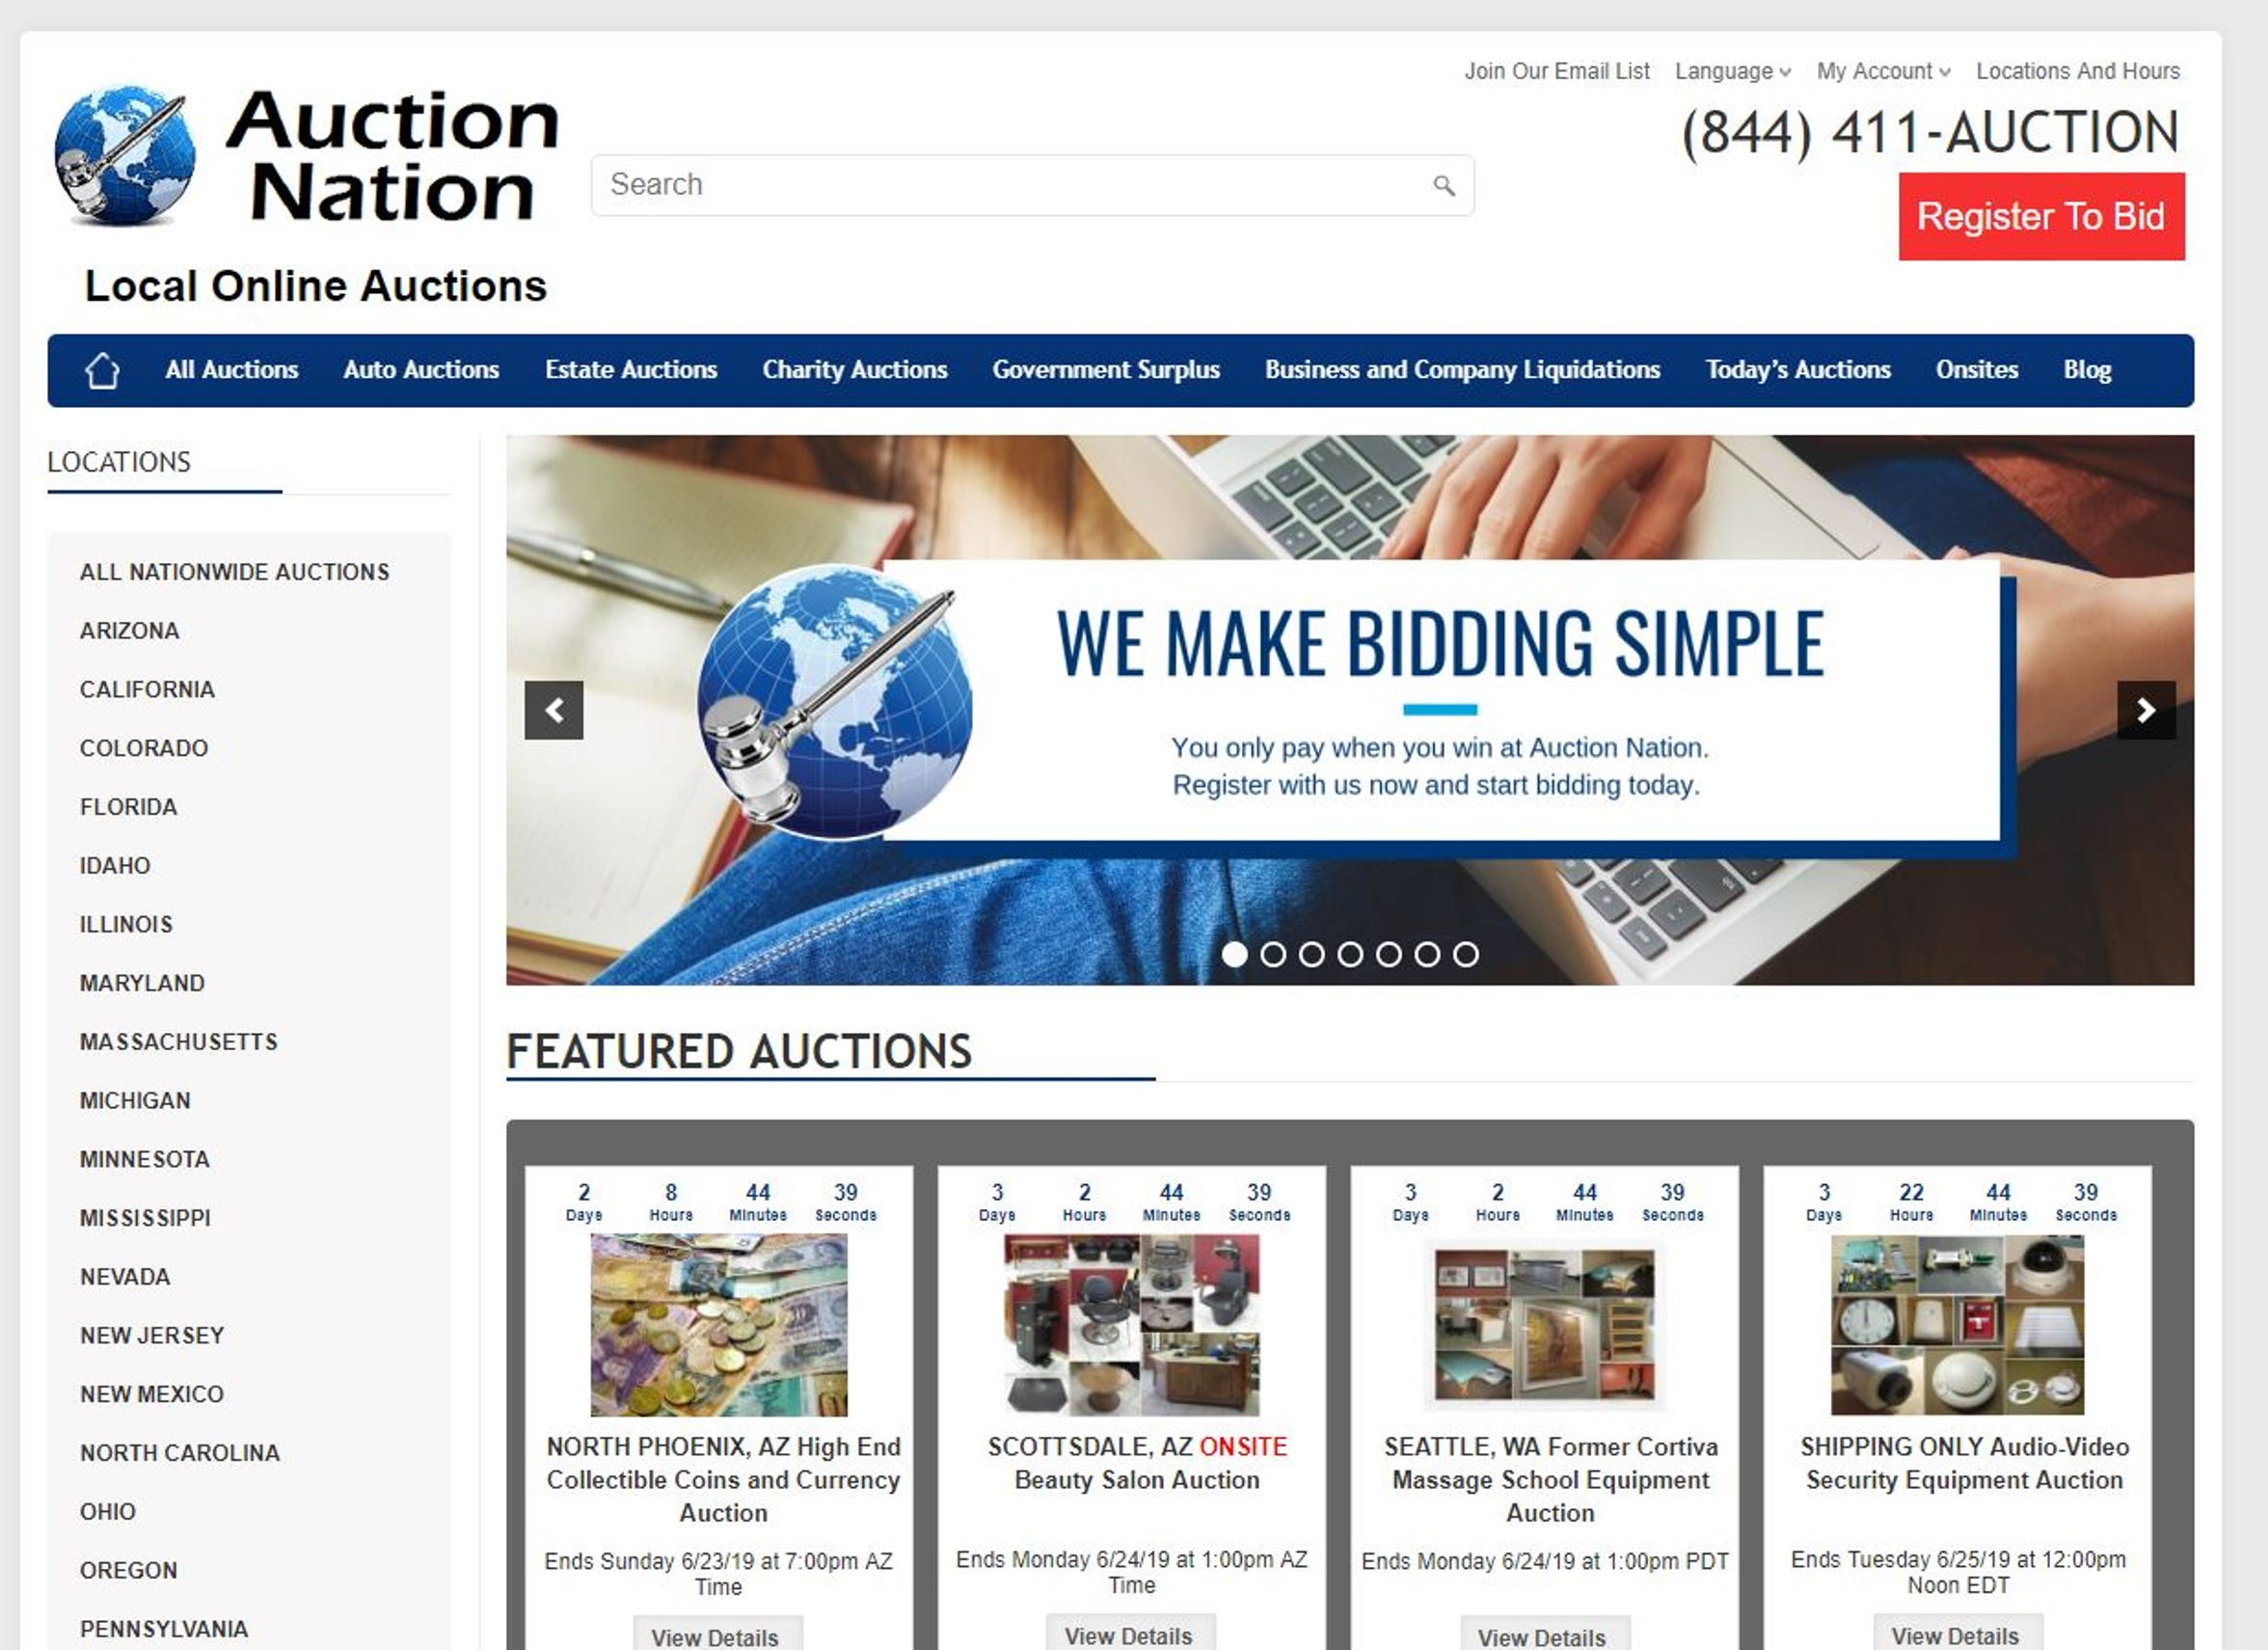 Auction Nation's websitedisguises house bidding.Consumers are not told the minimum acceptable saleprice,known as the reserve price. And that amount can change even after bidding is underway.